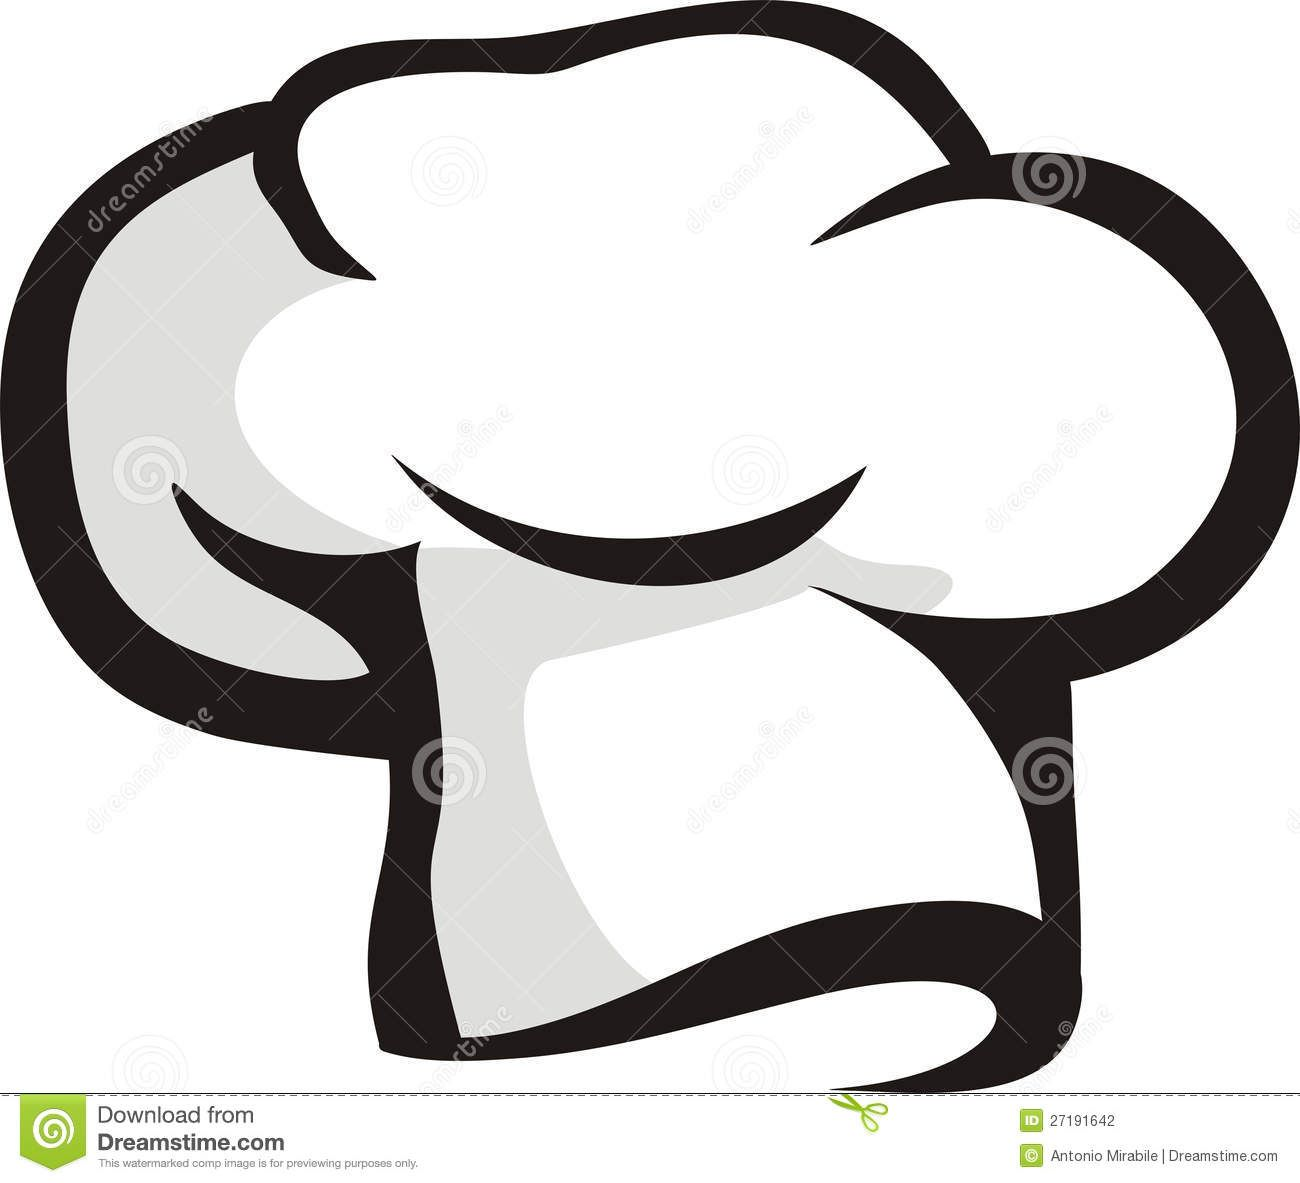 free chef clipart | chef-icon-01.jpg | Taste of Care Ideas ...